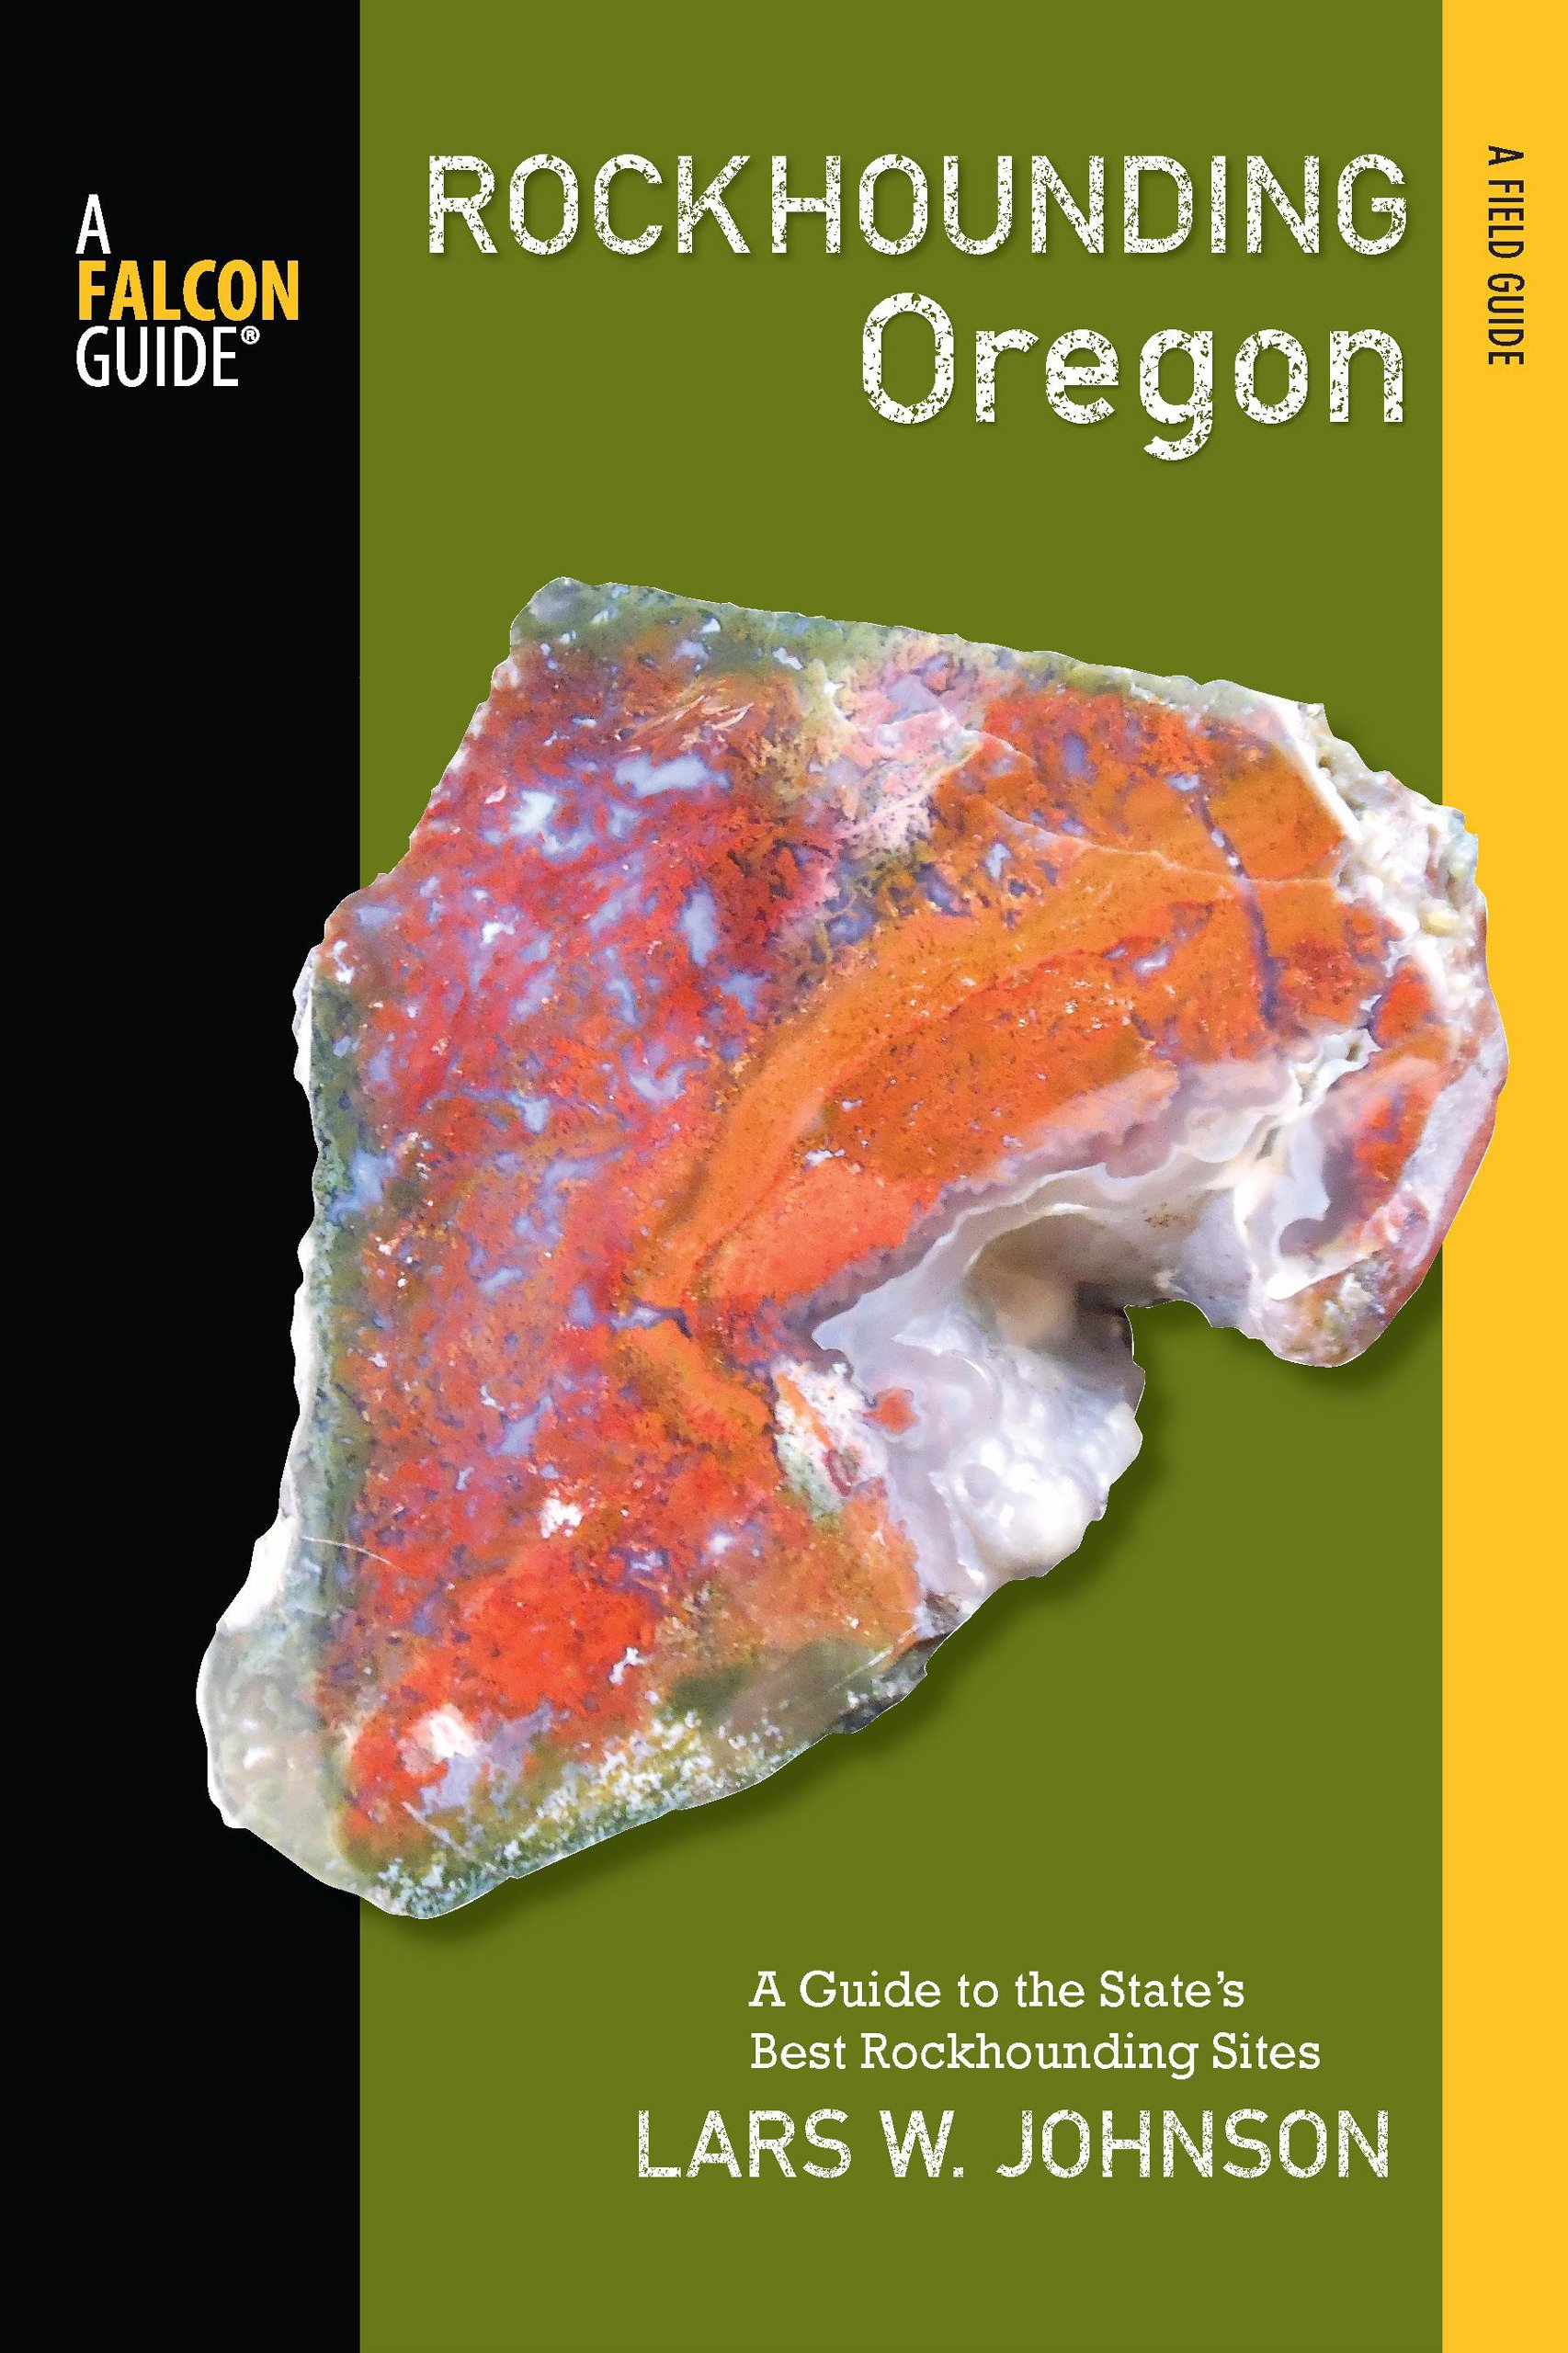 Rockhounding Oregon: A Guide to the State's Best Rockhounding Sites (Rockhounding Series)